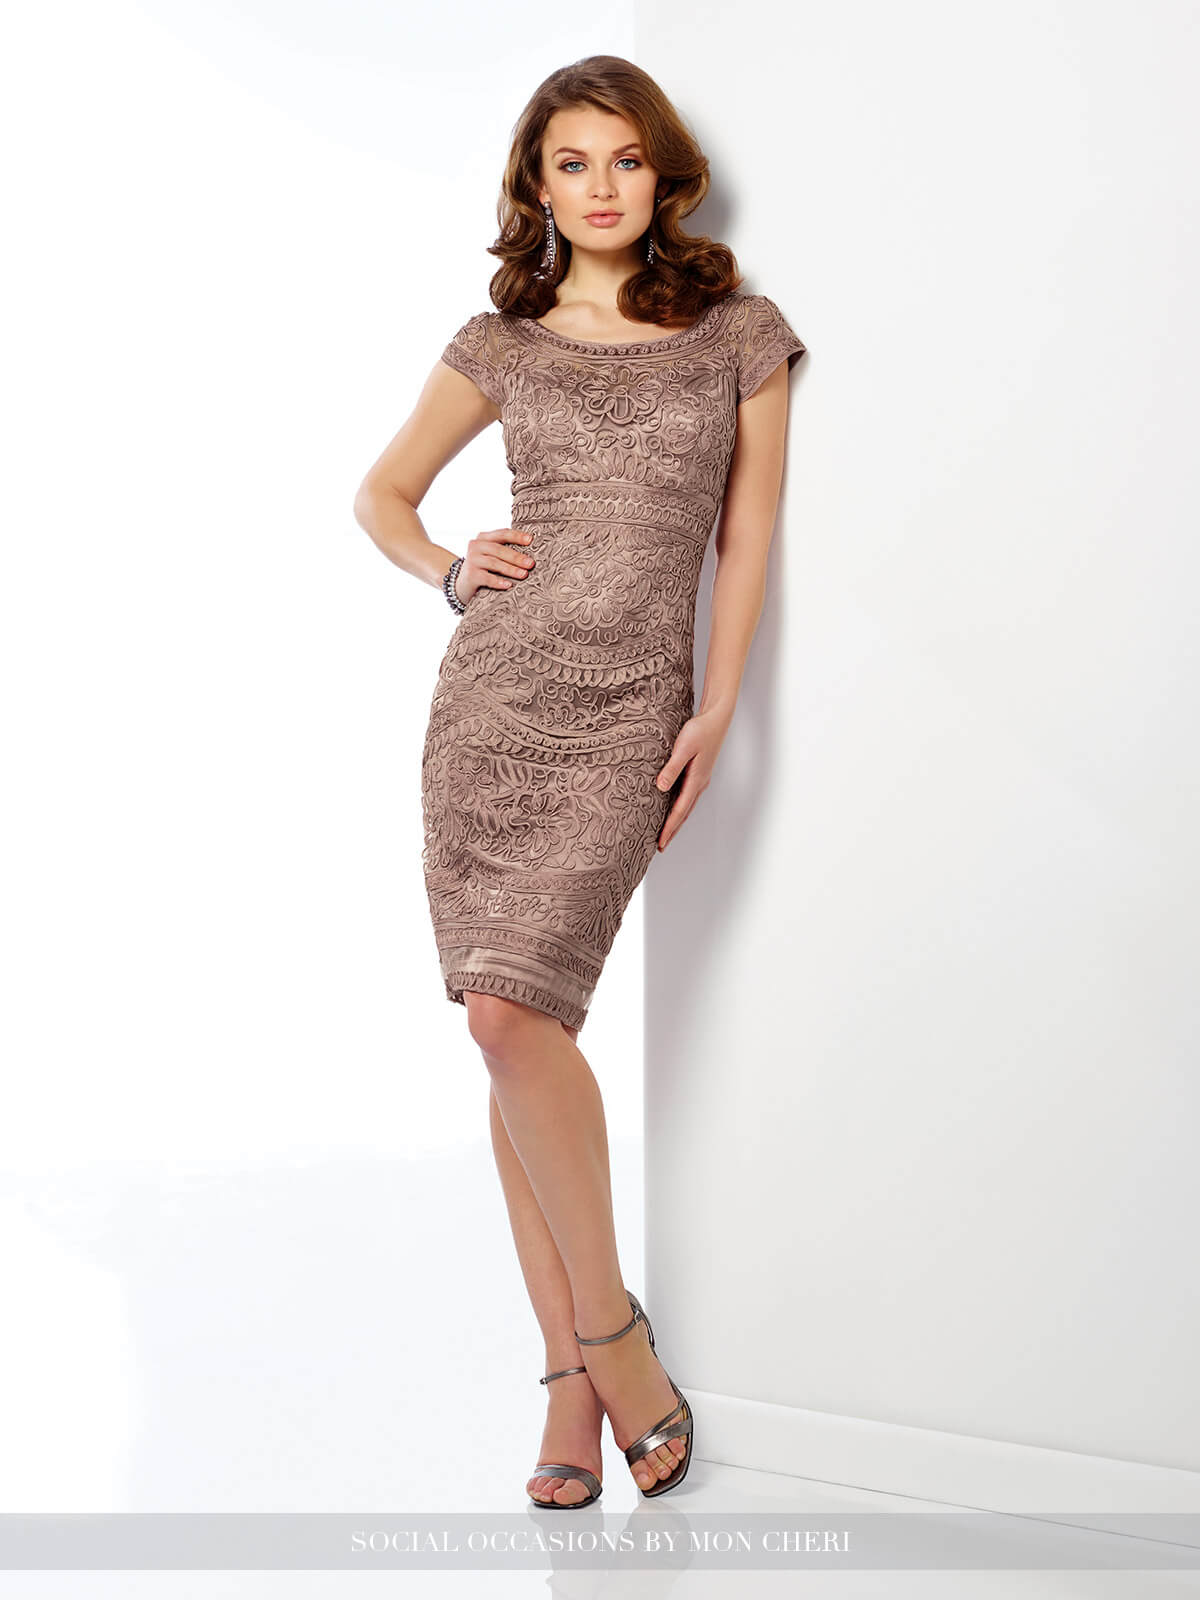 Women's Cocktail Dresses - Special Occasion Dresses Special occasions call for special dresses. At the top of every woman's wish list is a dress that will make her feel as gorgeous on the inside as she looks on the outside.